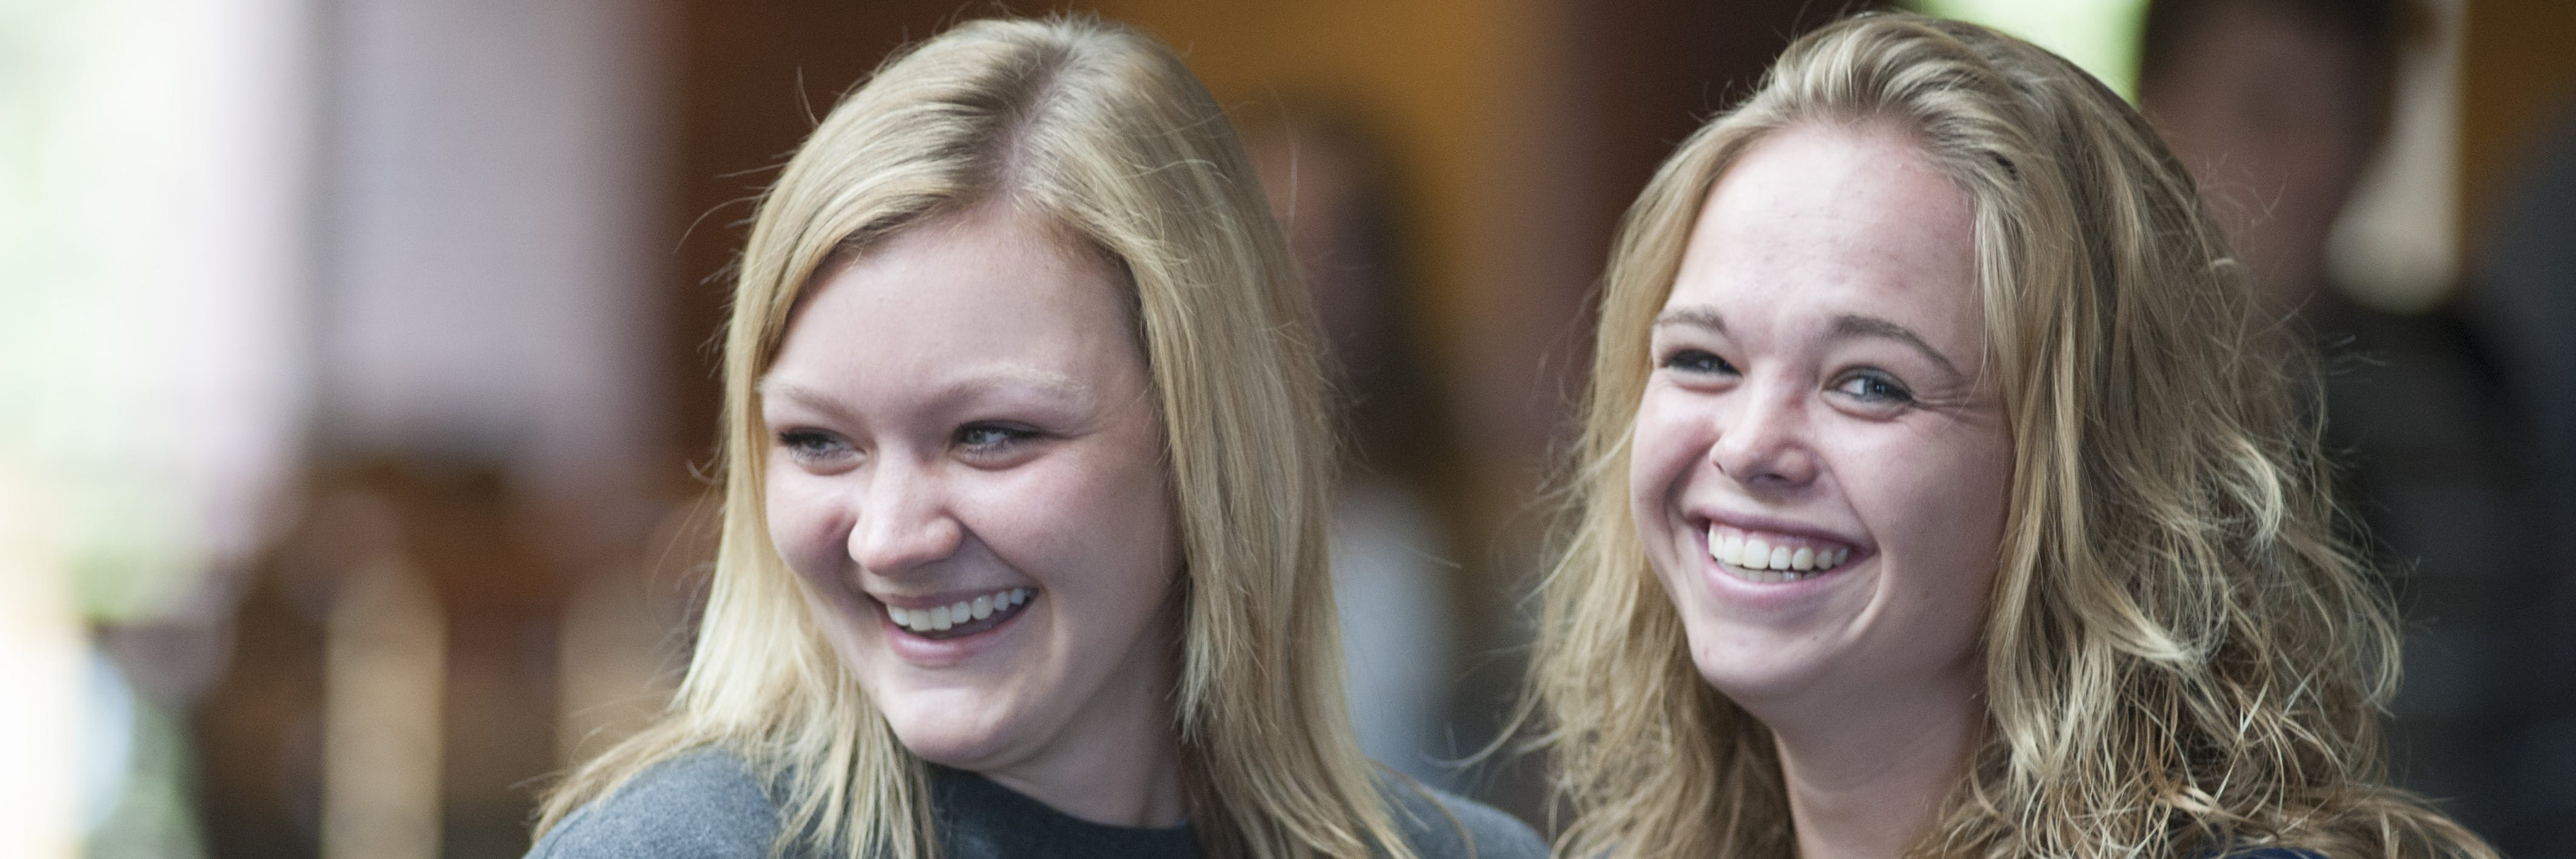 A couple students are smiling.